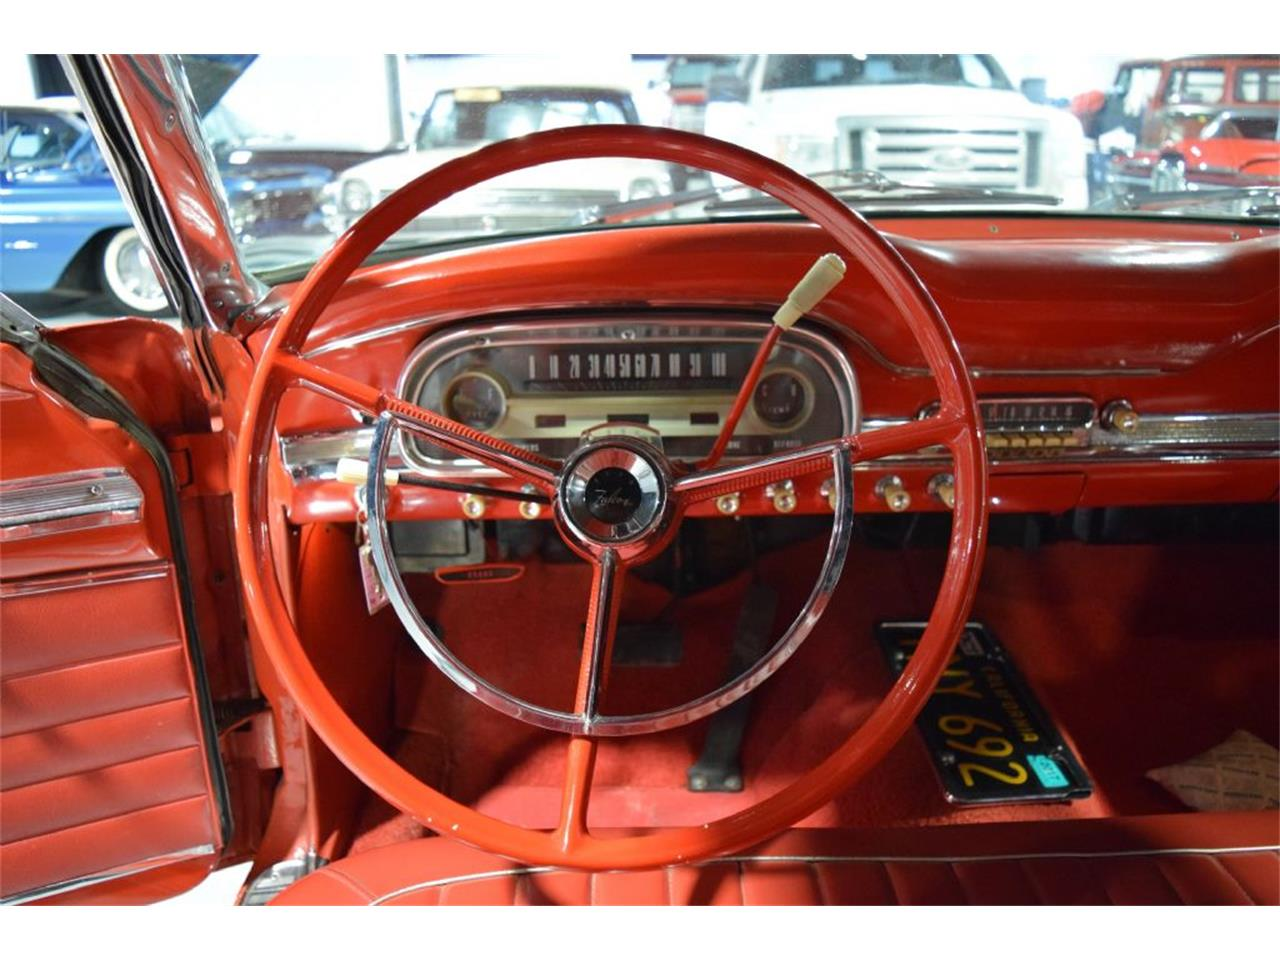 1963 Ford Falcon Futura for sale in Sioux City, IA – photo 9